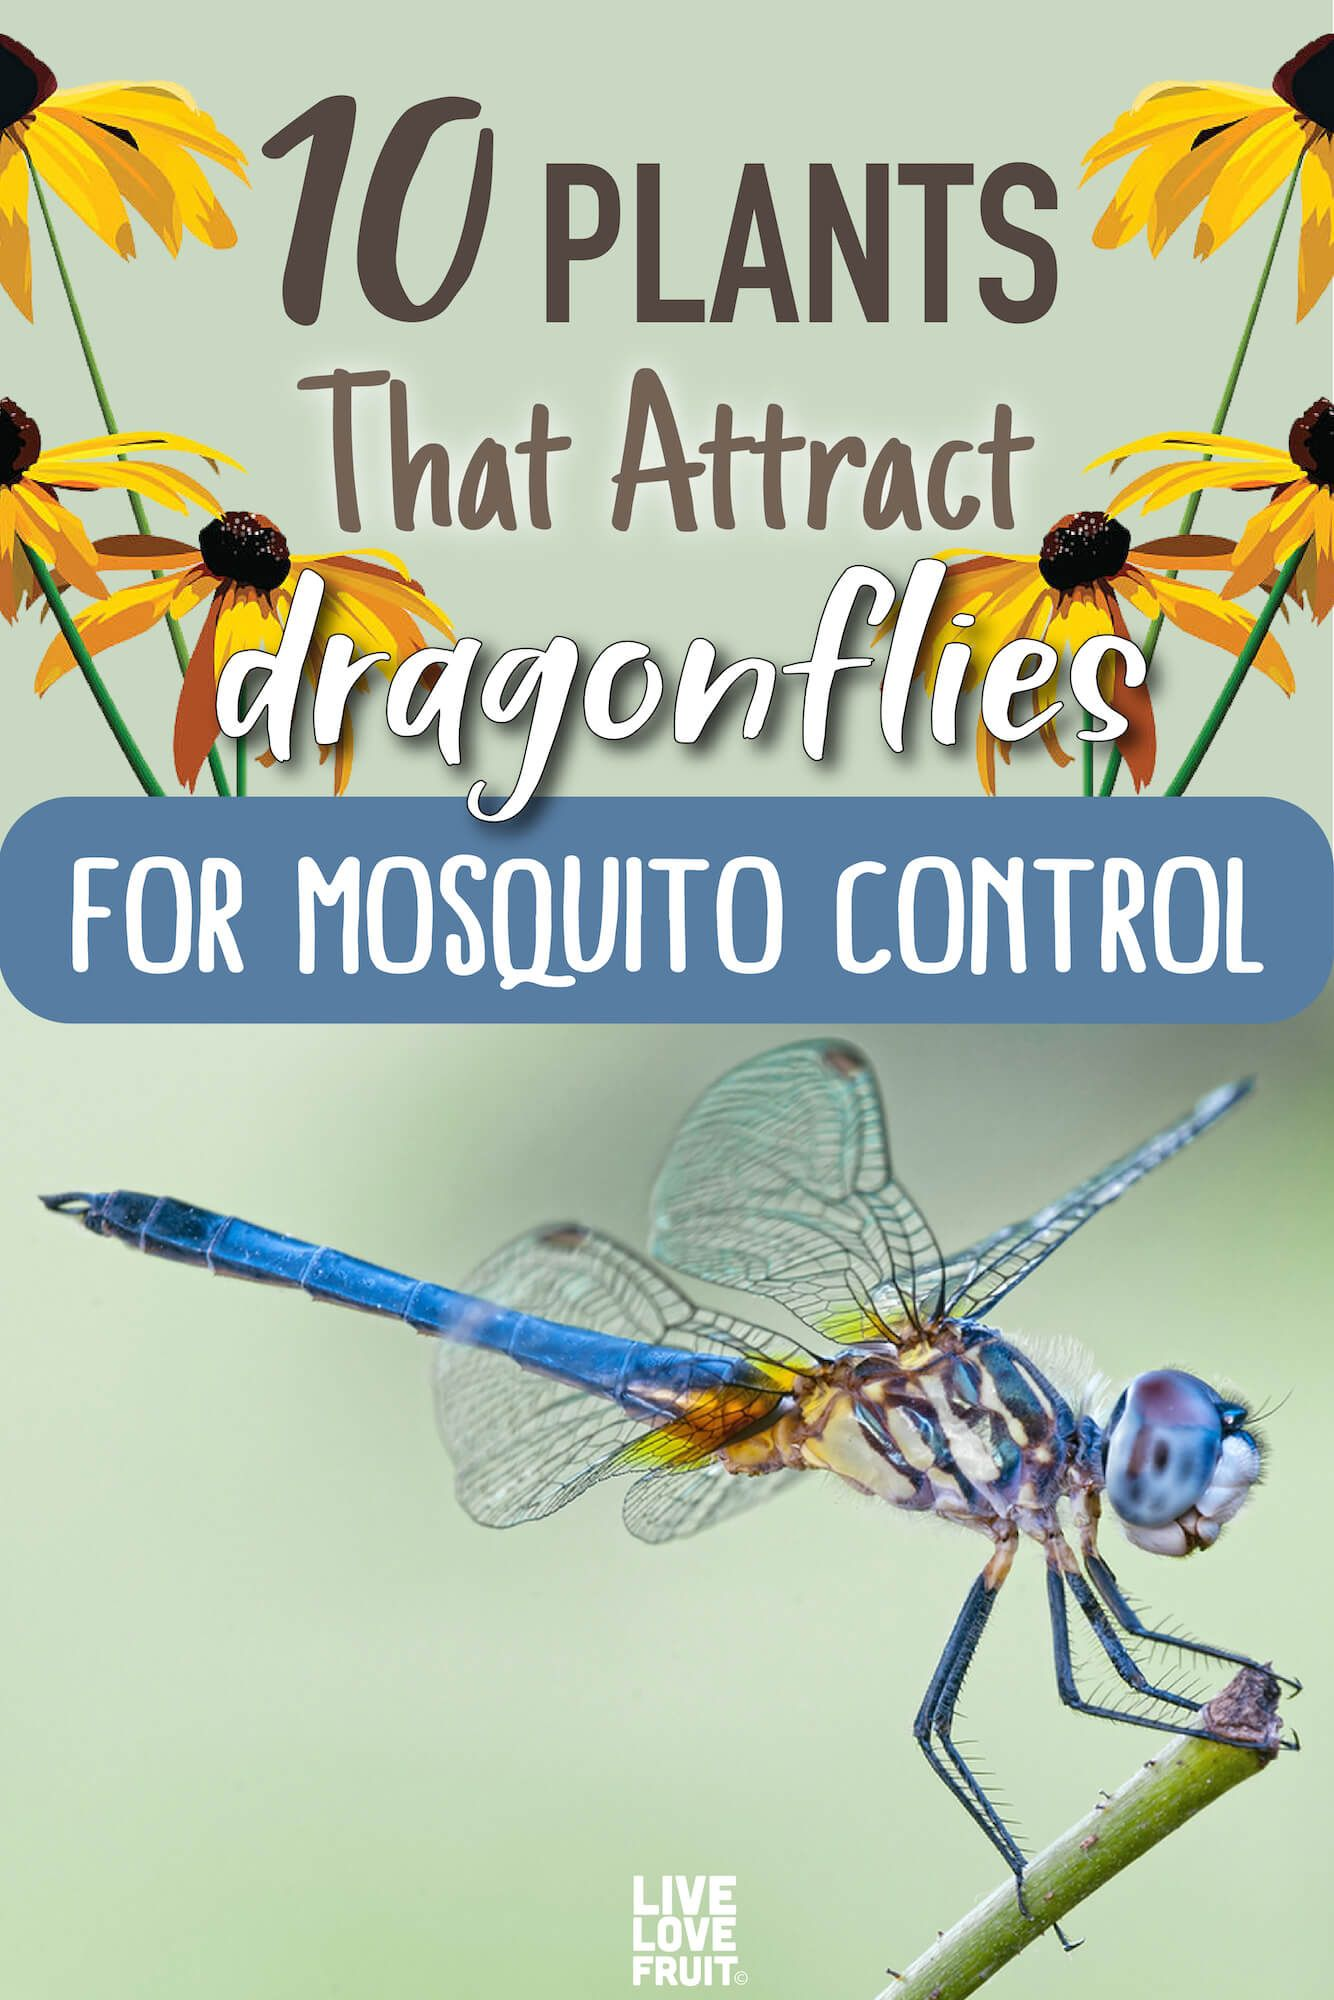 One Dragonfly Can Eat Hundreds of Mosquitoes a Day. Keep These Plants in Your Yard to Attract Dragonflies! #outdoorgardens